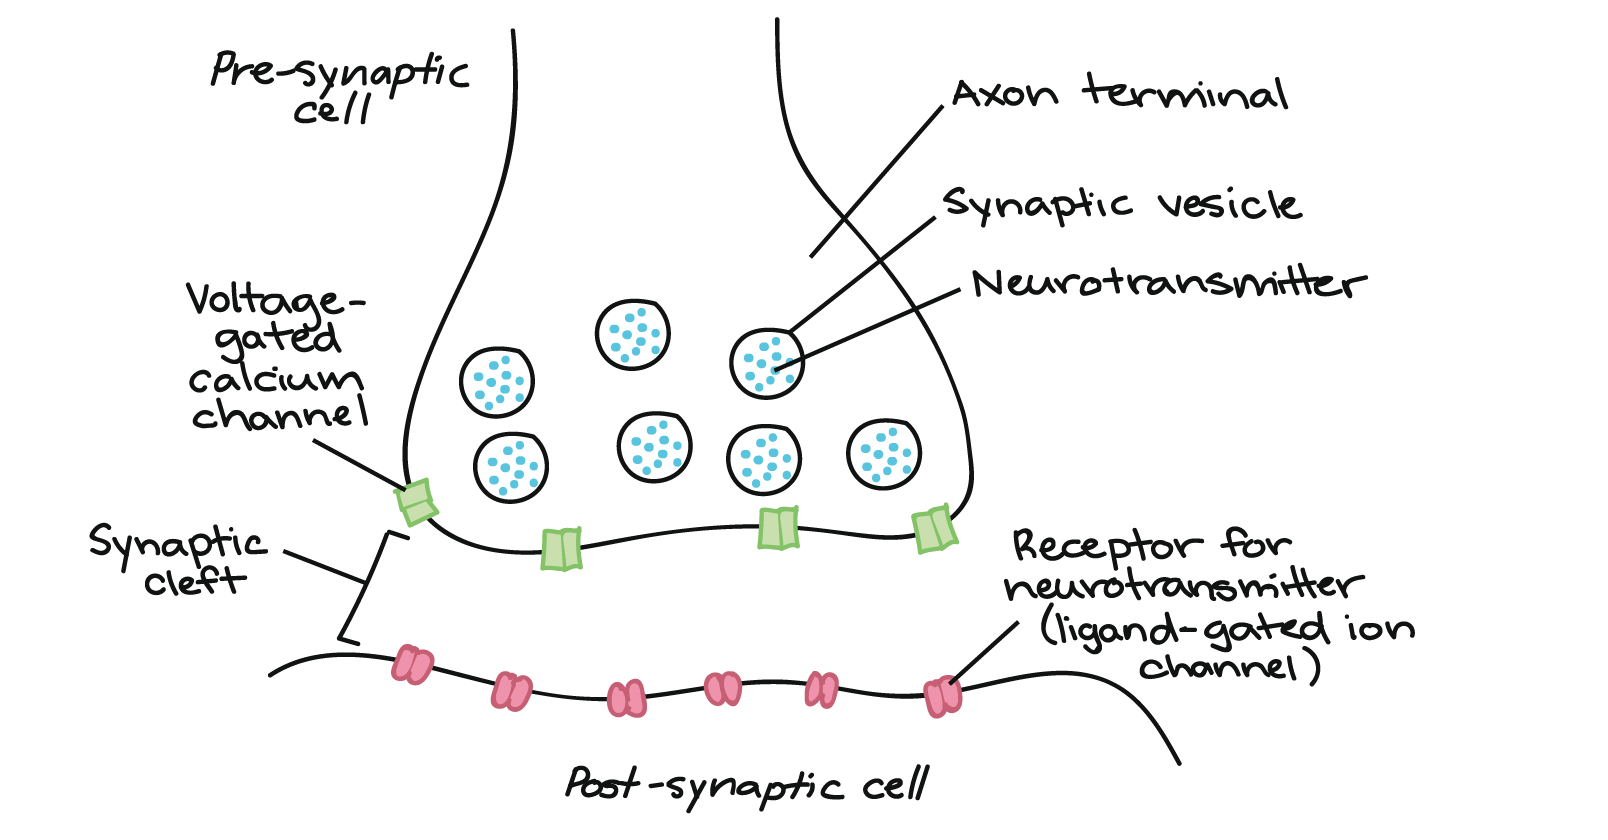 hight resolution of image showing pre synaptic cell s axon terminal containing synaptic vesicles with neurotransmitters voltage